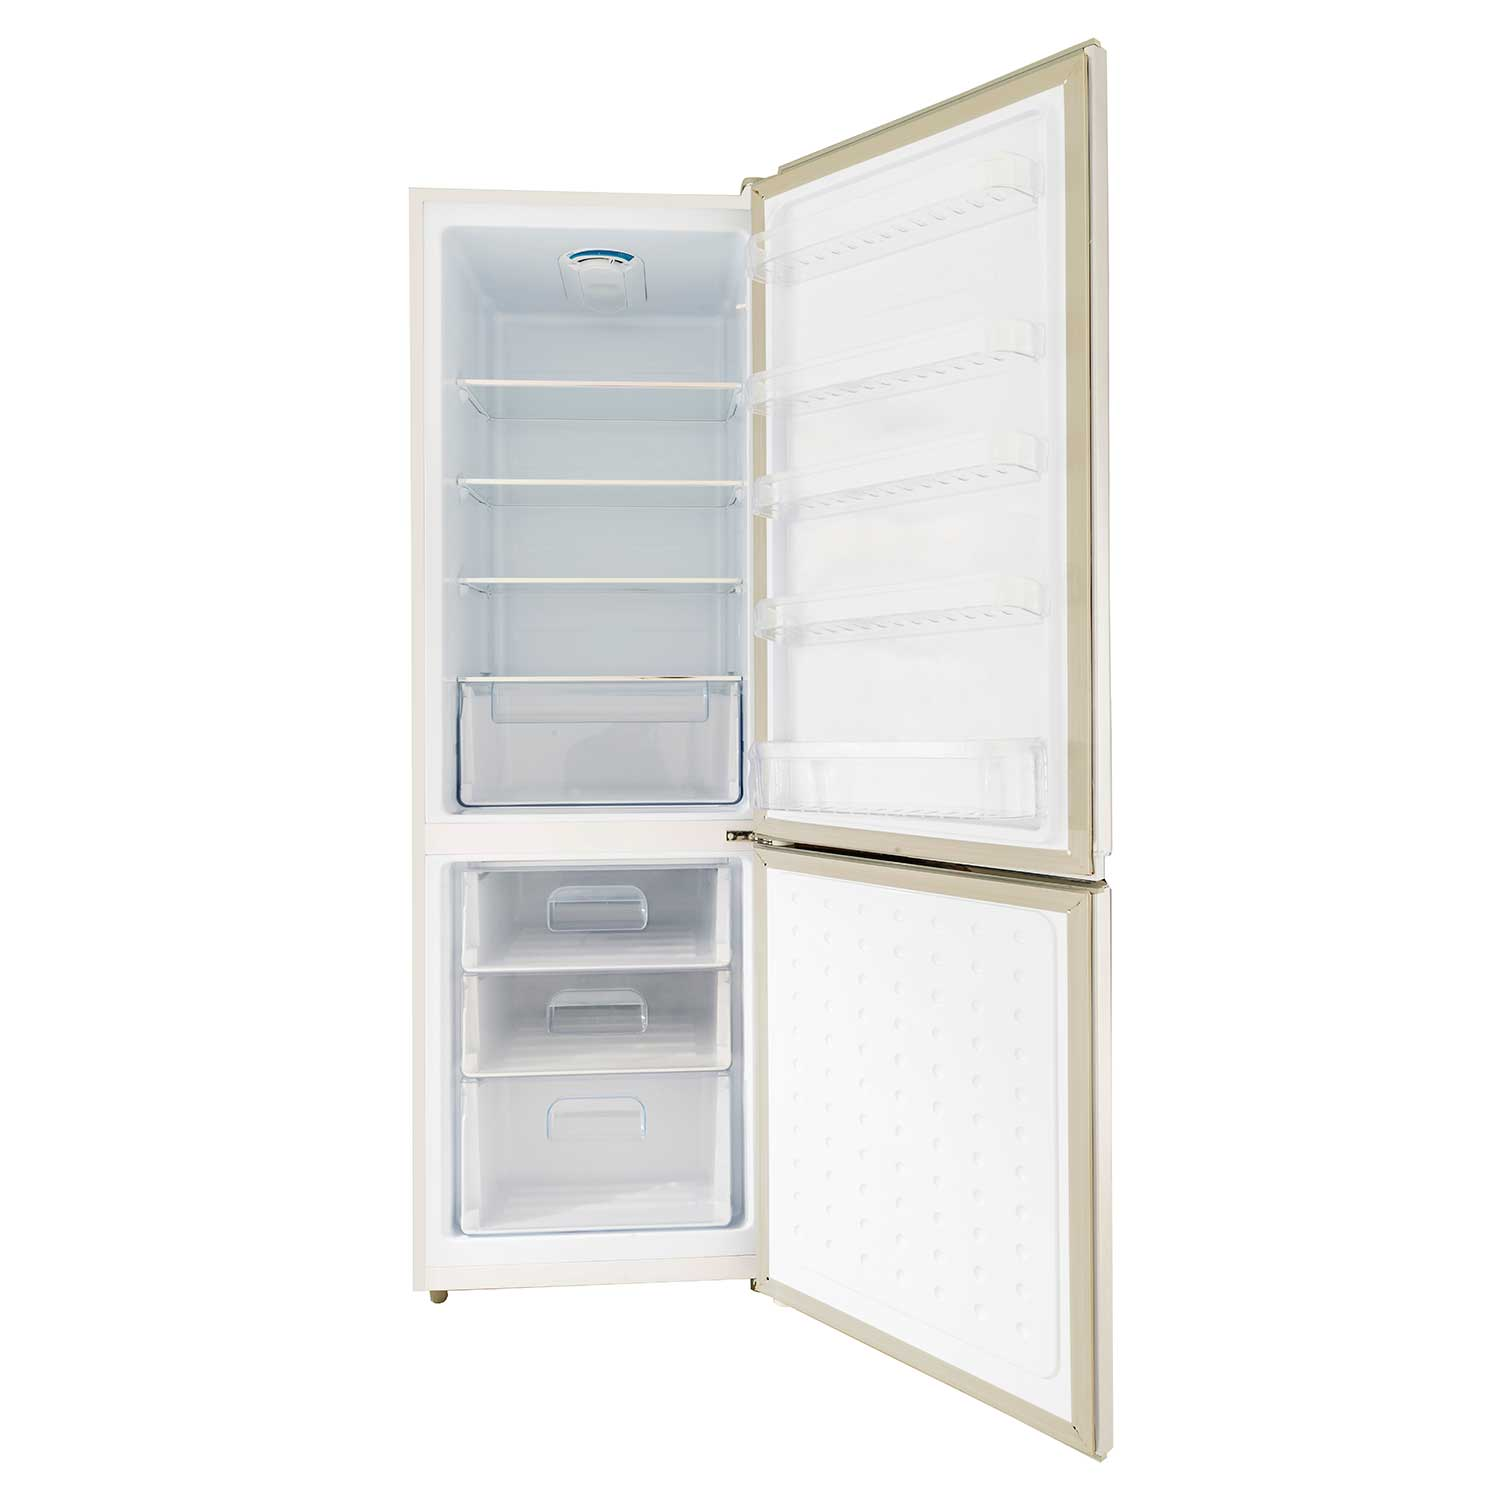 CAPRI 370L RELIABLE TOP FRIDGE